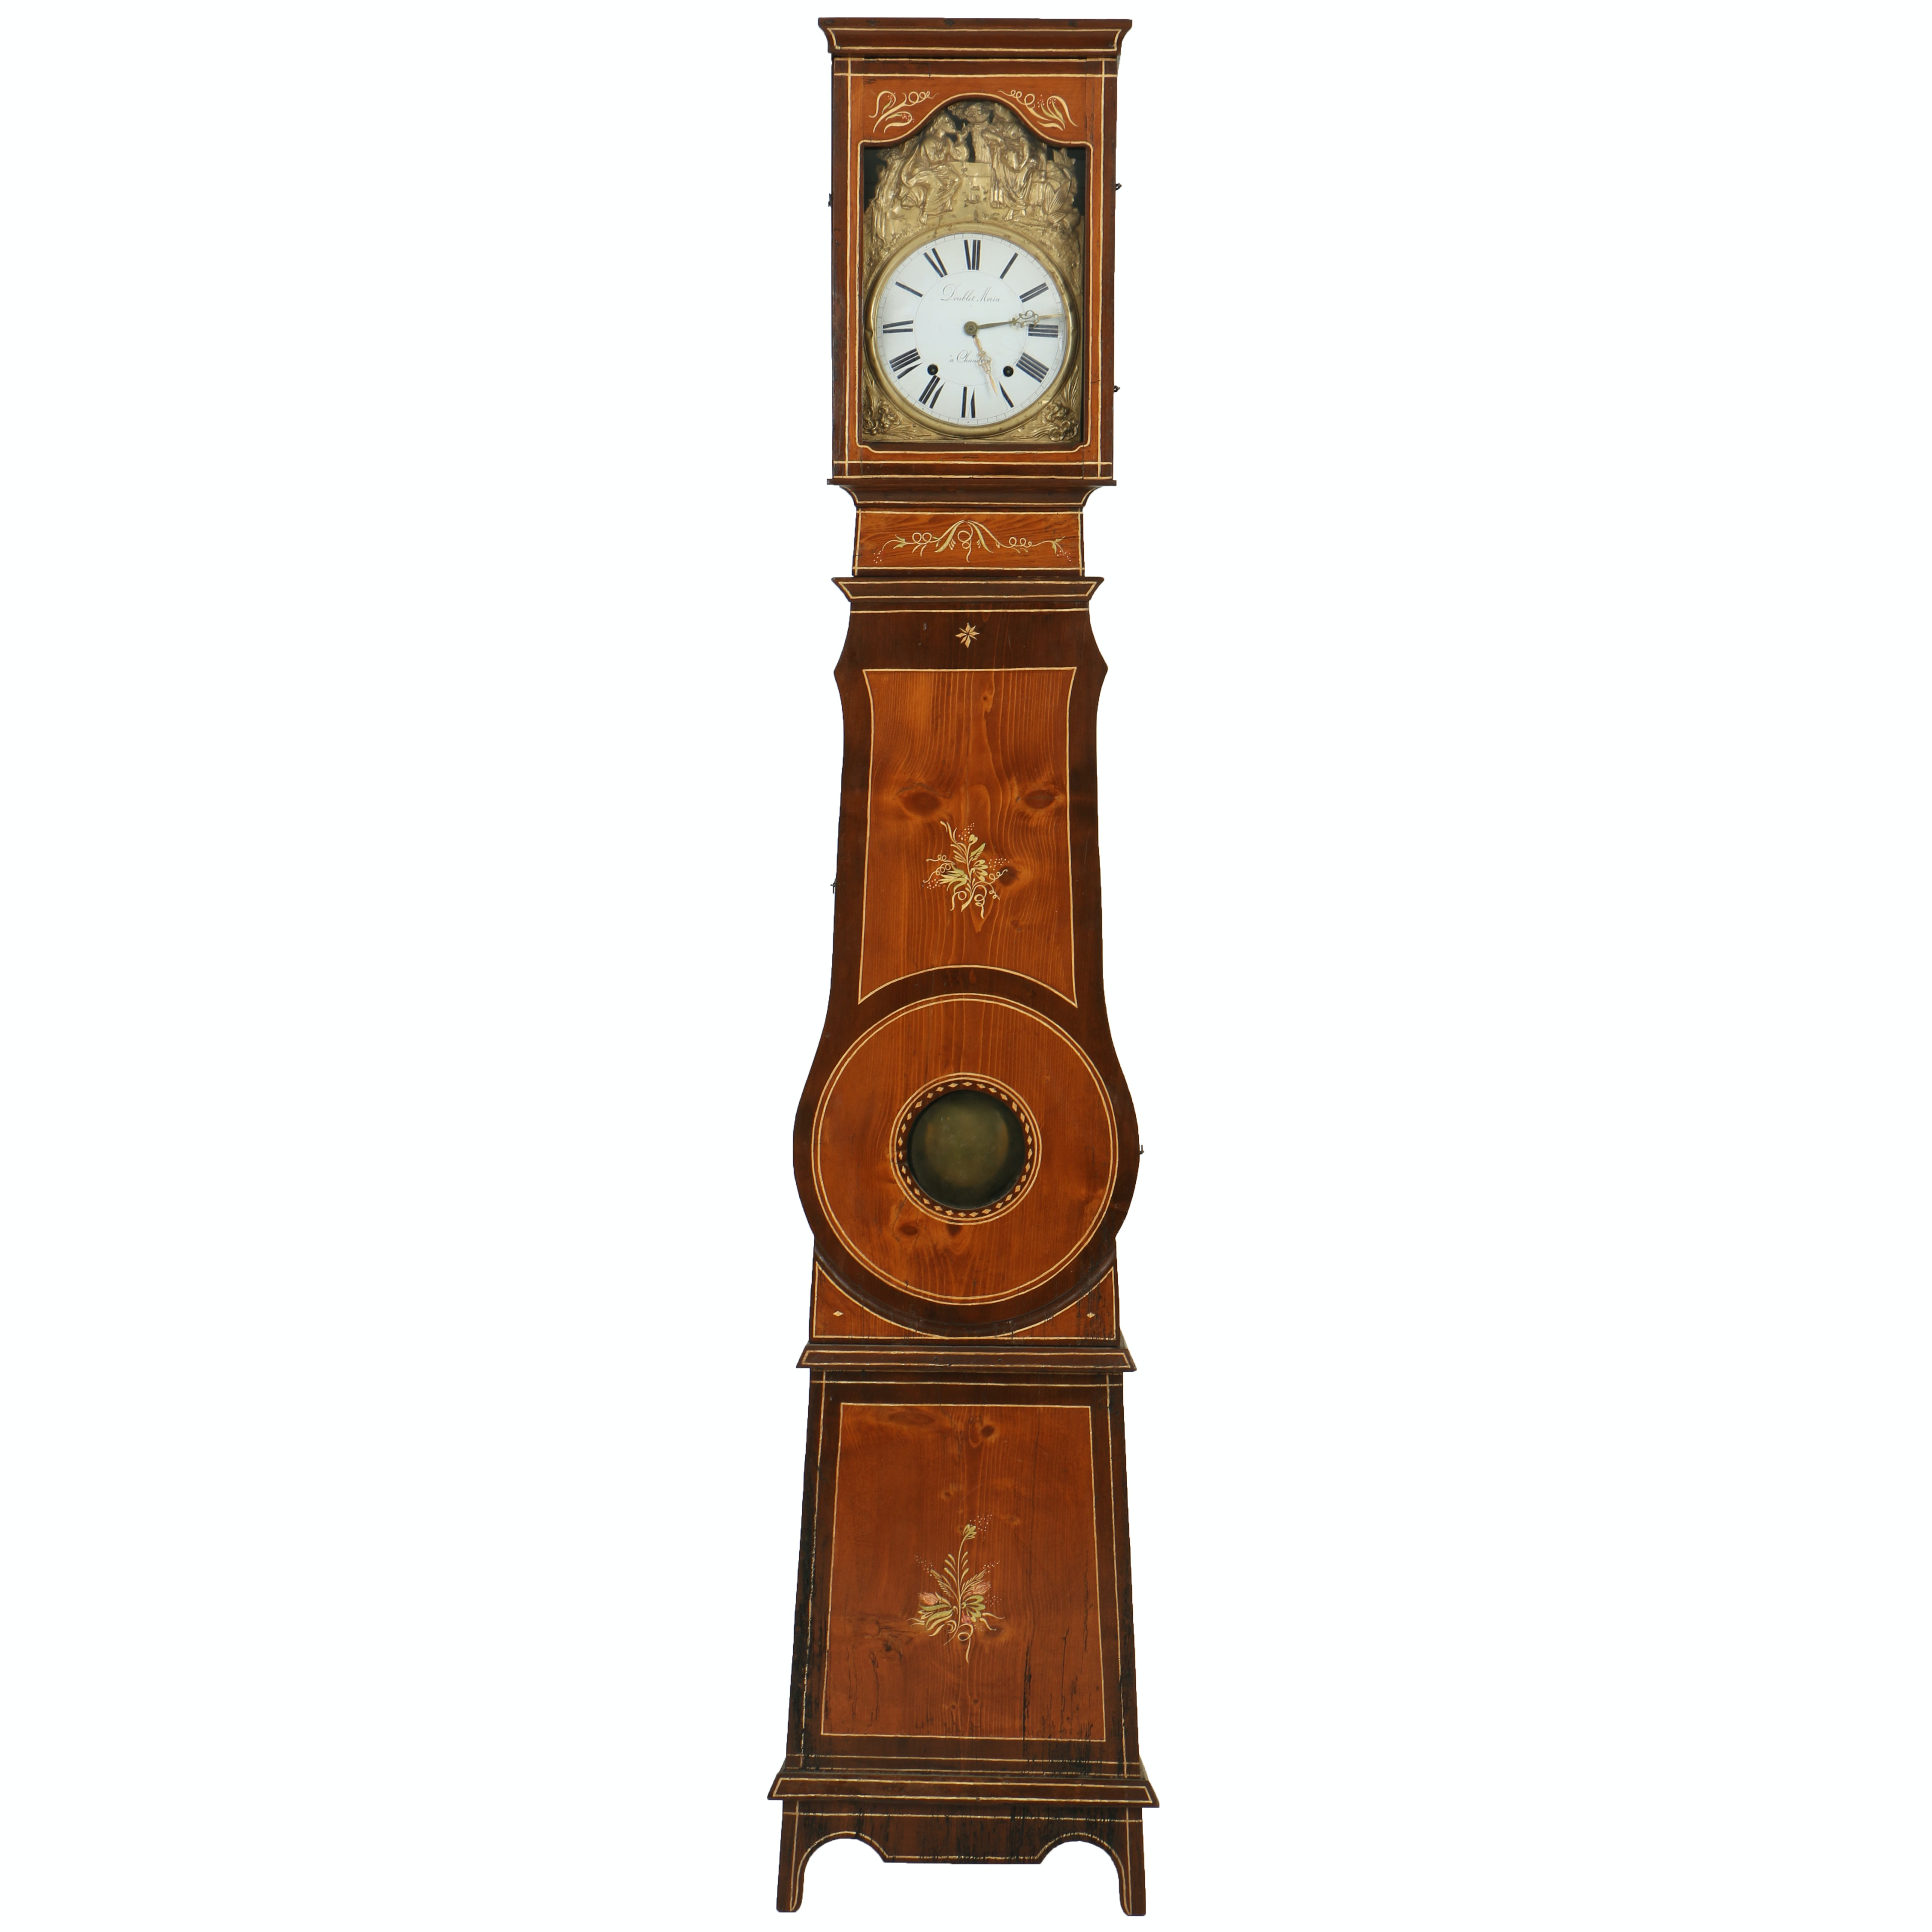 19th-Century Country French Morbier Case Clock